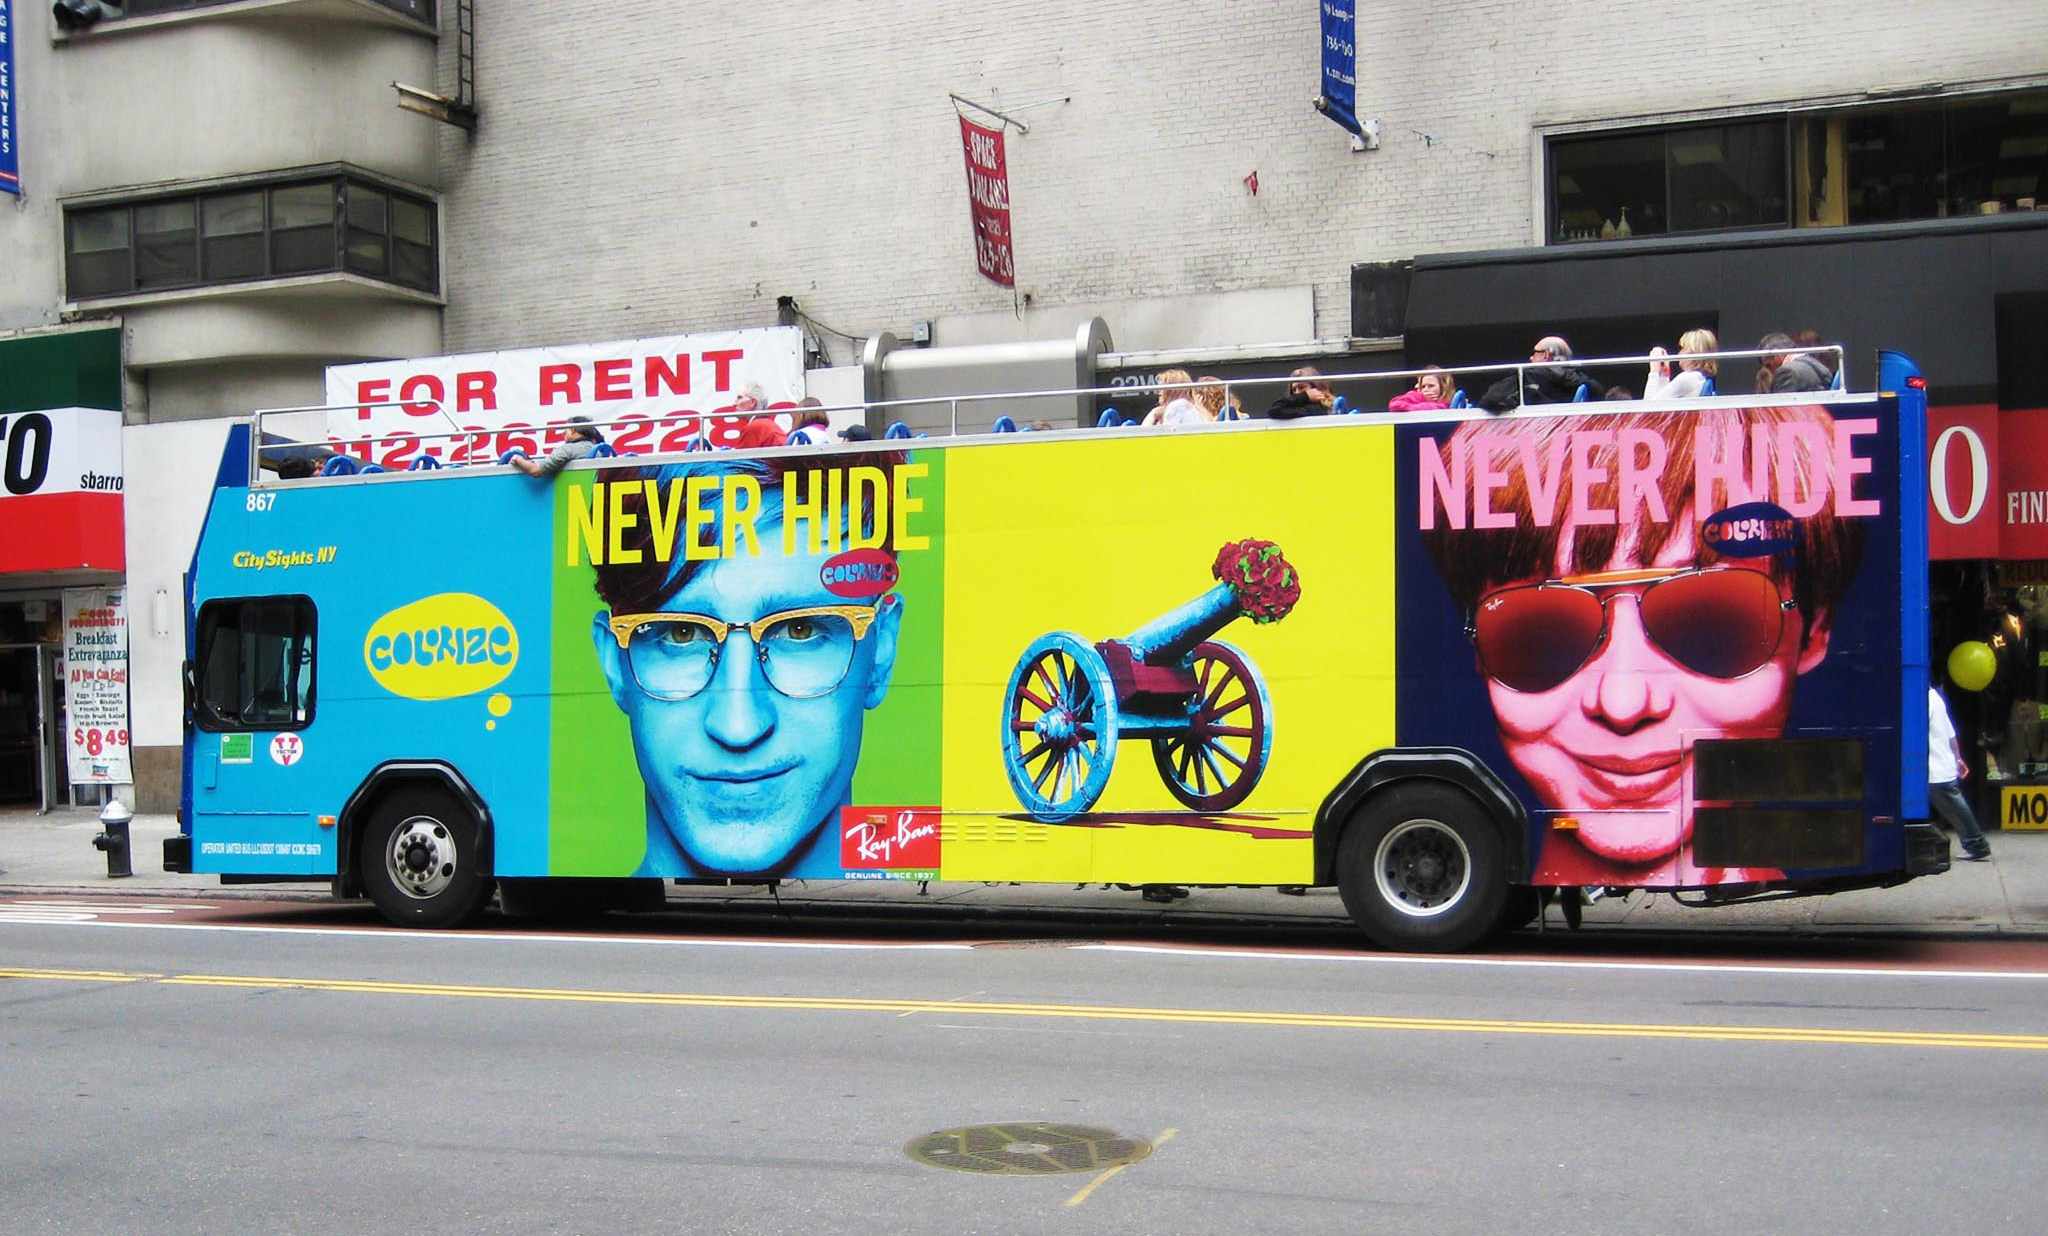 Ray-Ban-Never-Hide-Colorize-Bus